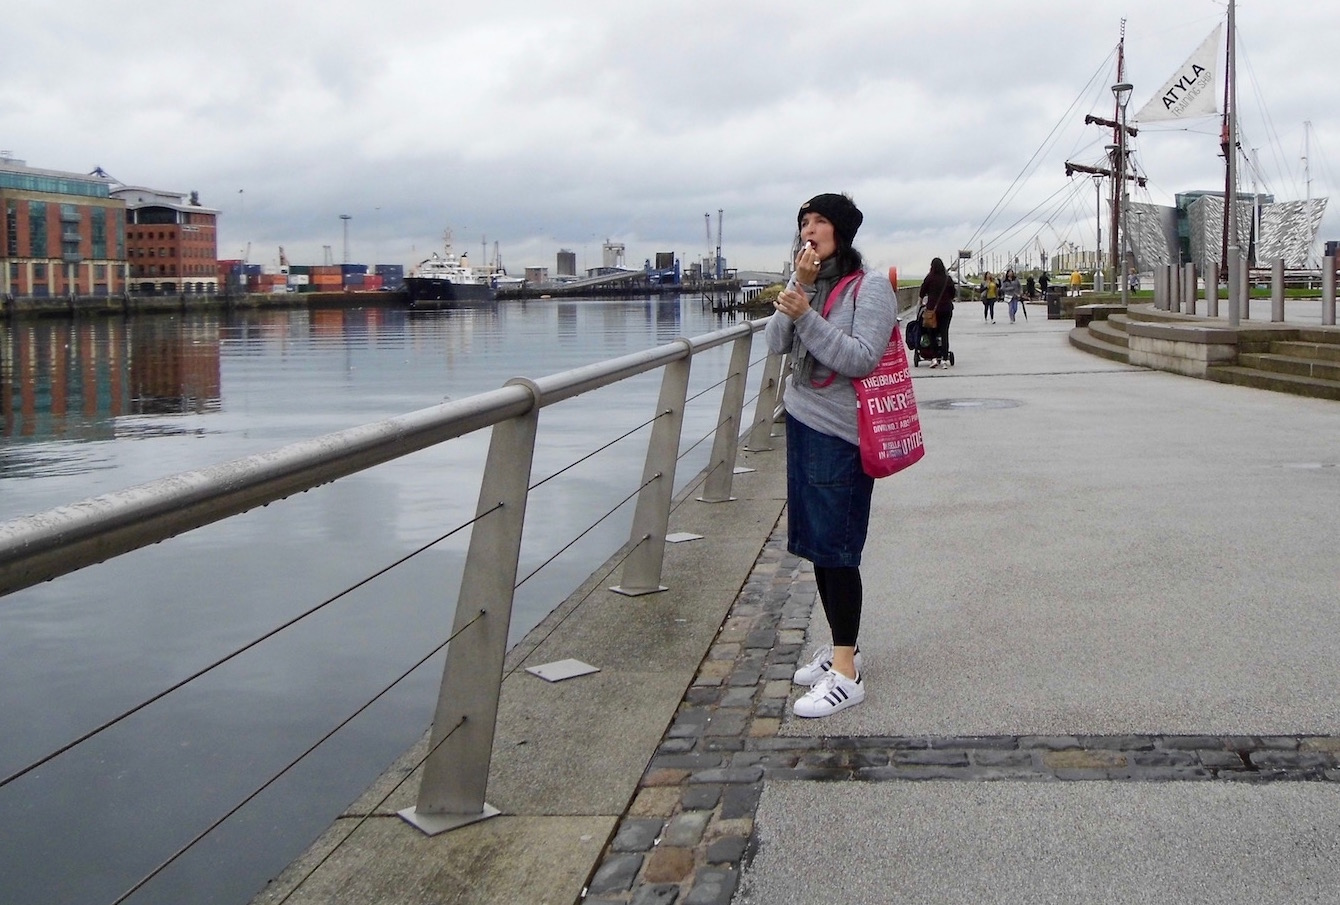 Belfast: A stroll along the River Lagan